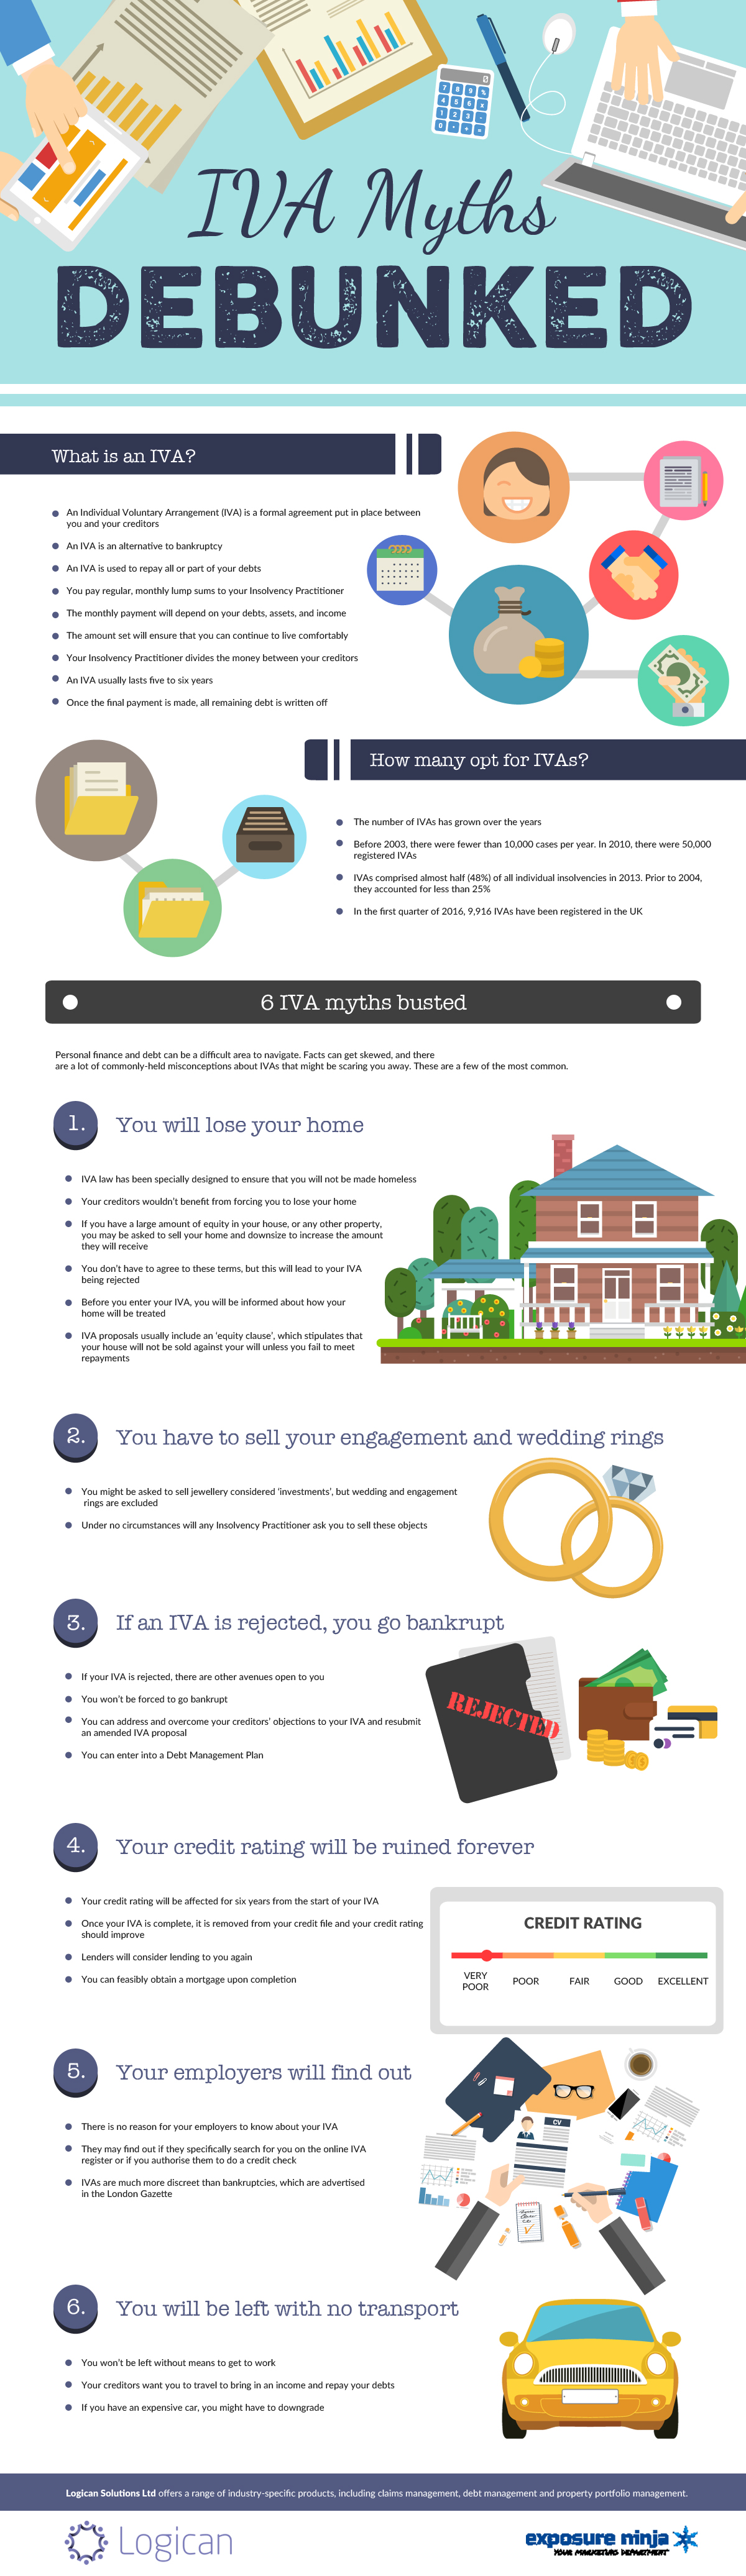 IVA myths debunked infographic